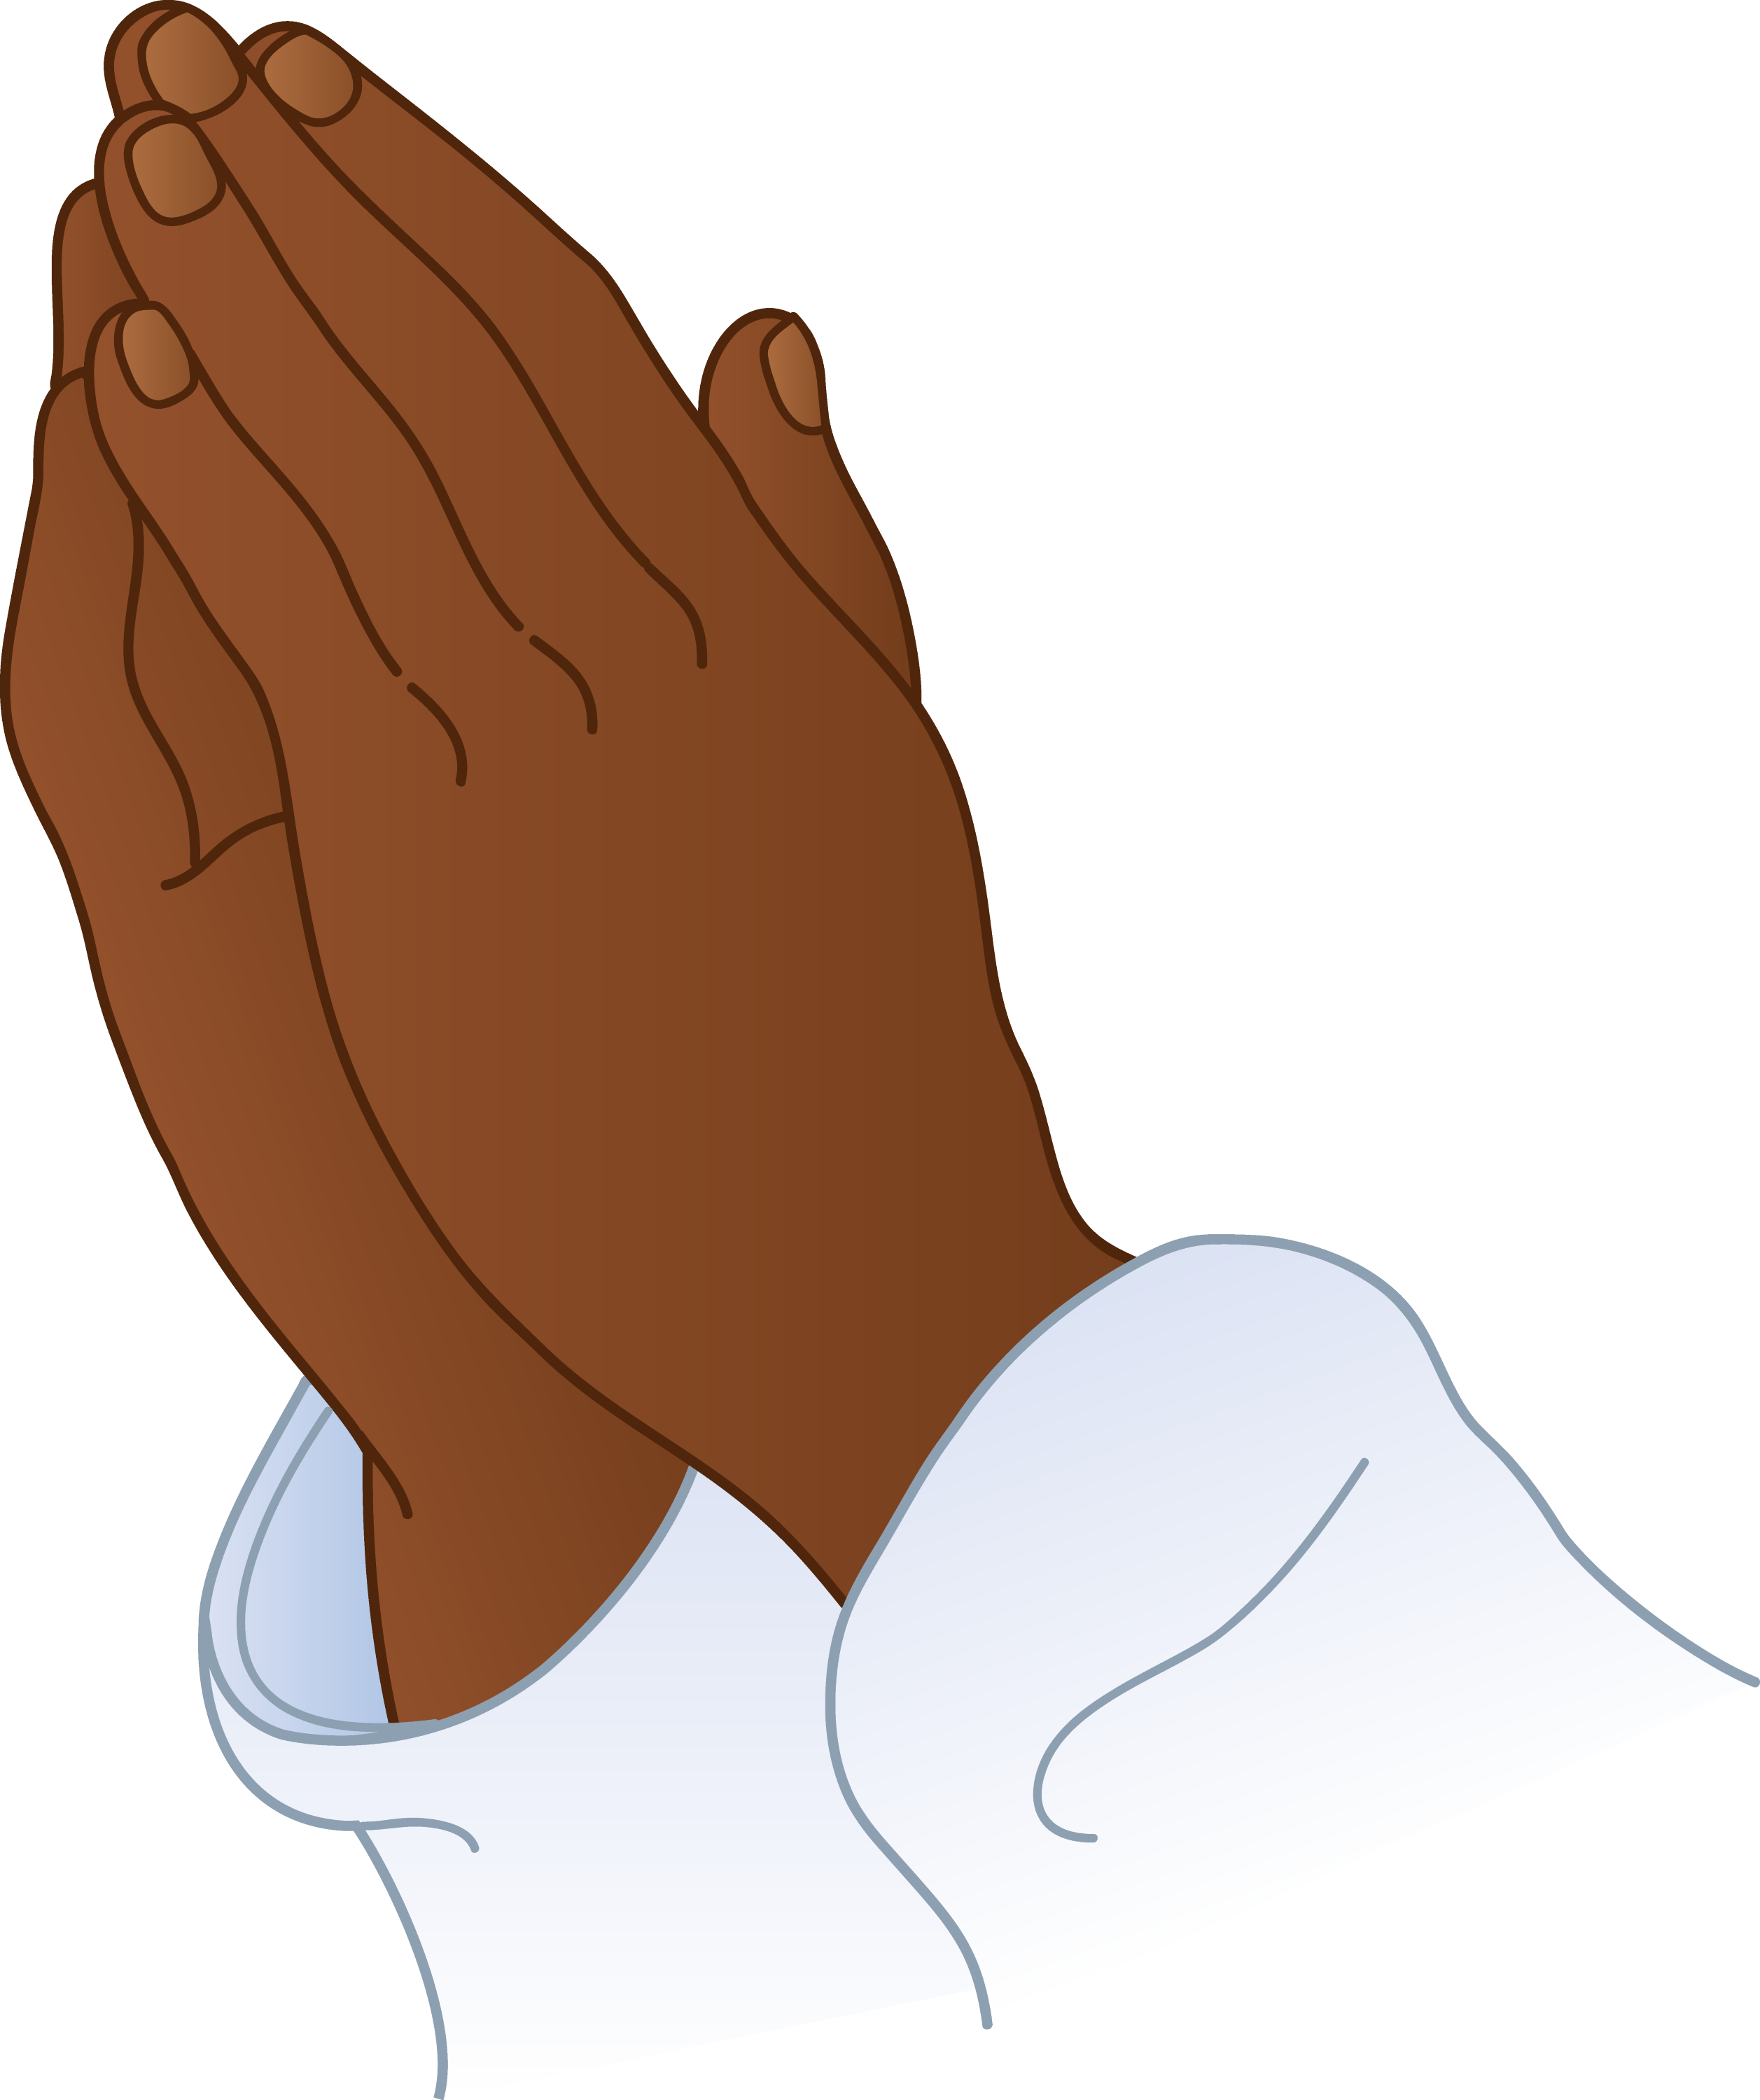 praying hands 2 free clip art